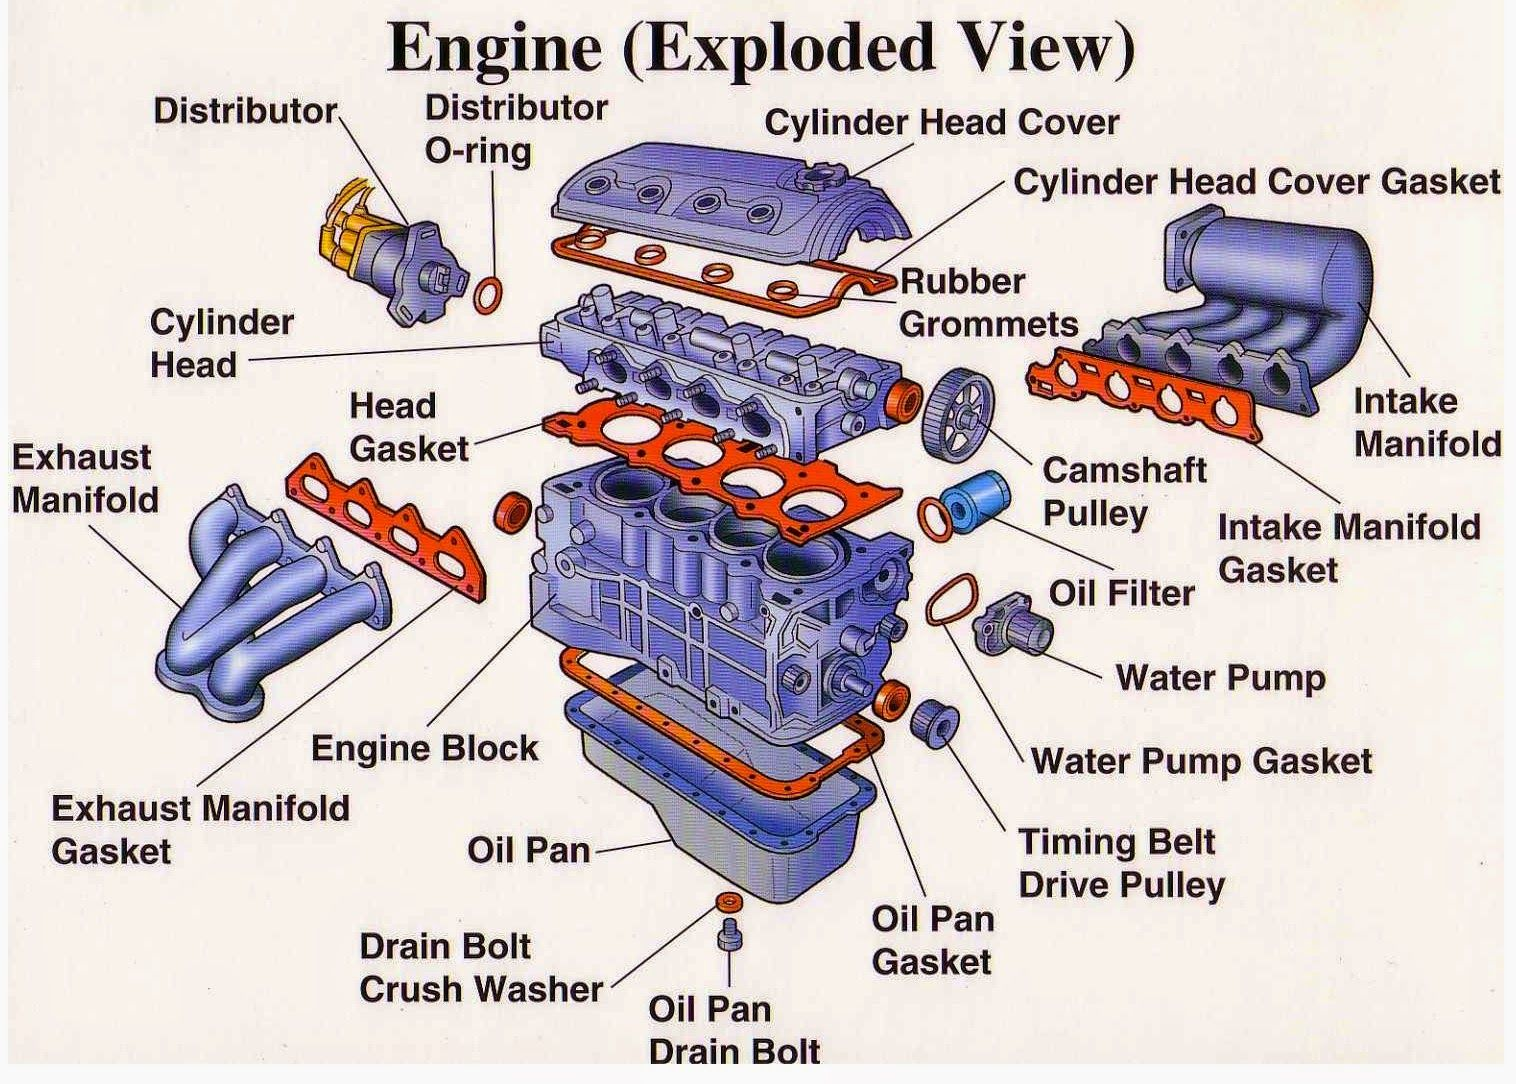 Engine Parts (Exploded View) | Electrical Engineering Blog | Bunny ...